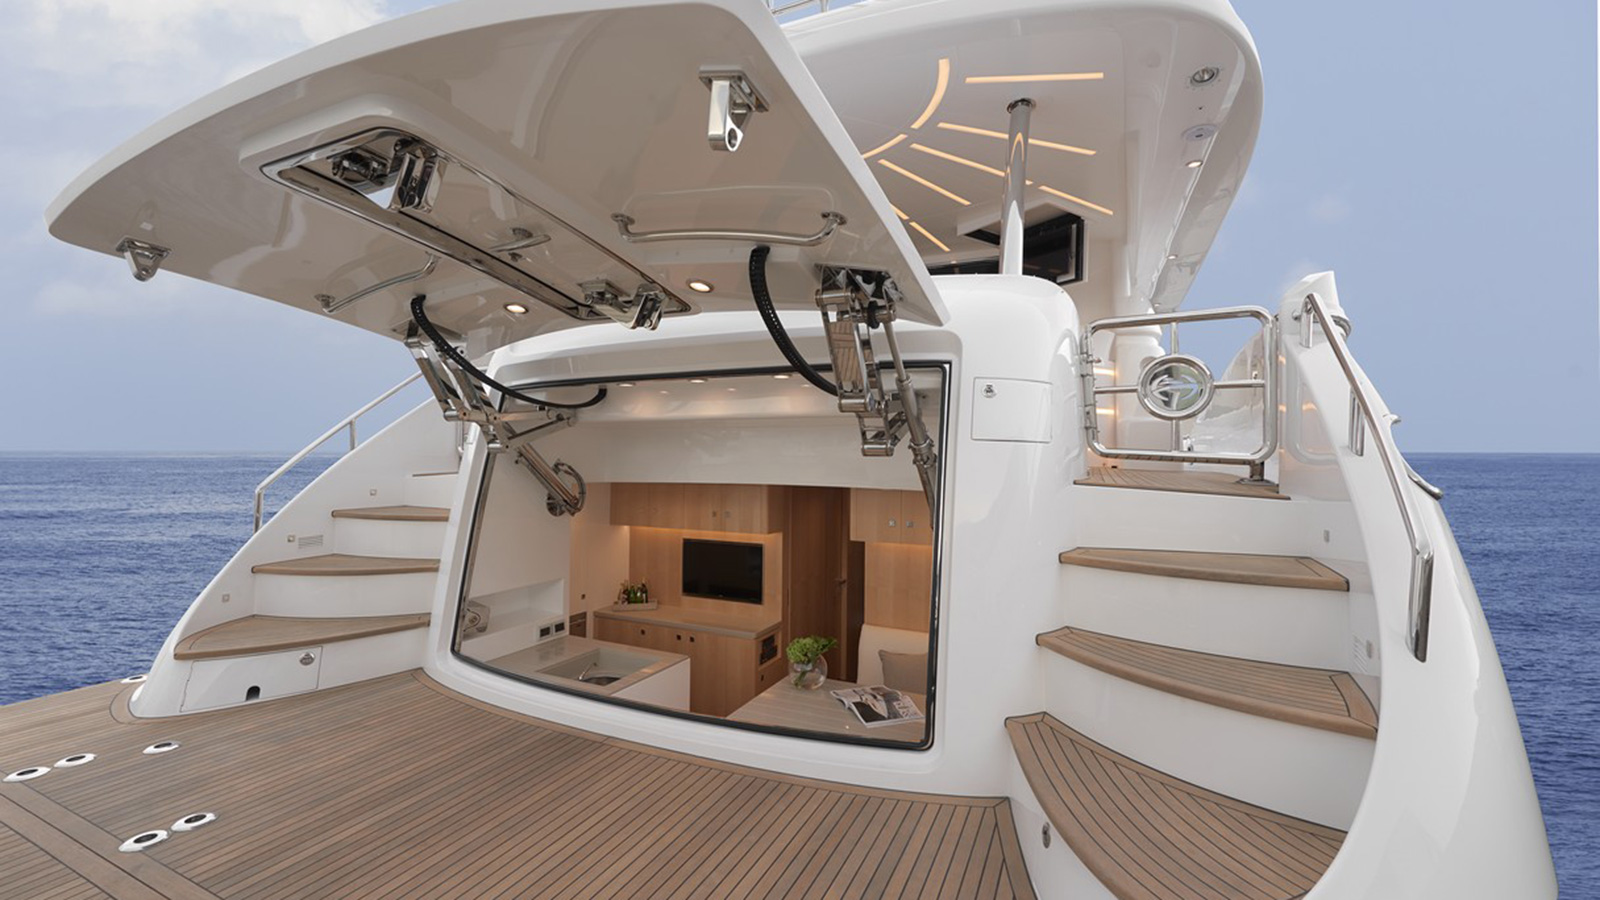 horizon-yachts-e88-hull-number-20-features-a-hydraulically-opening-beach-club